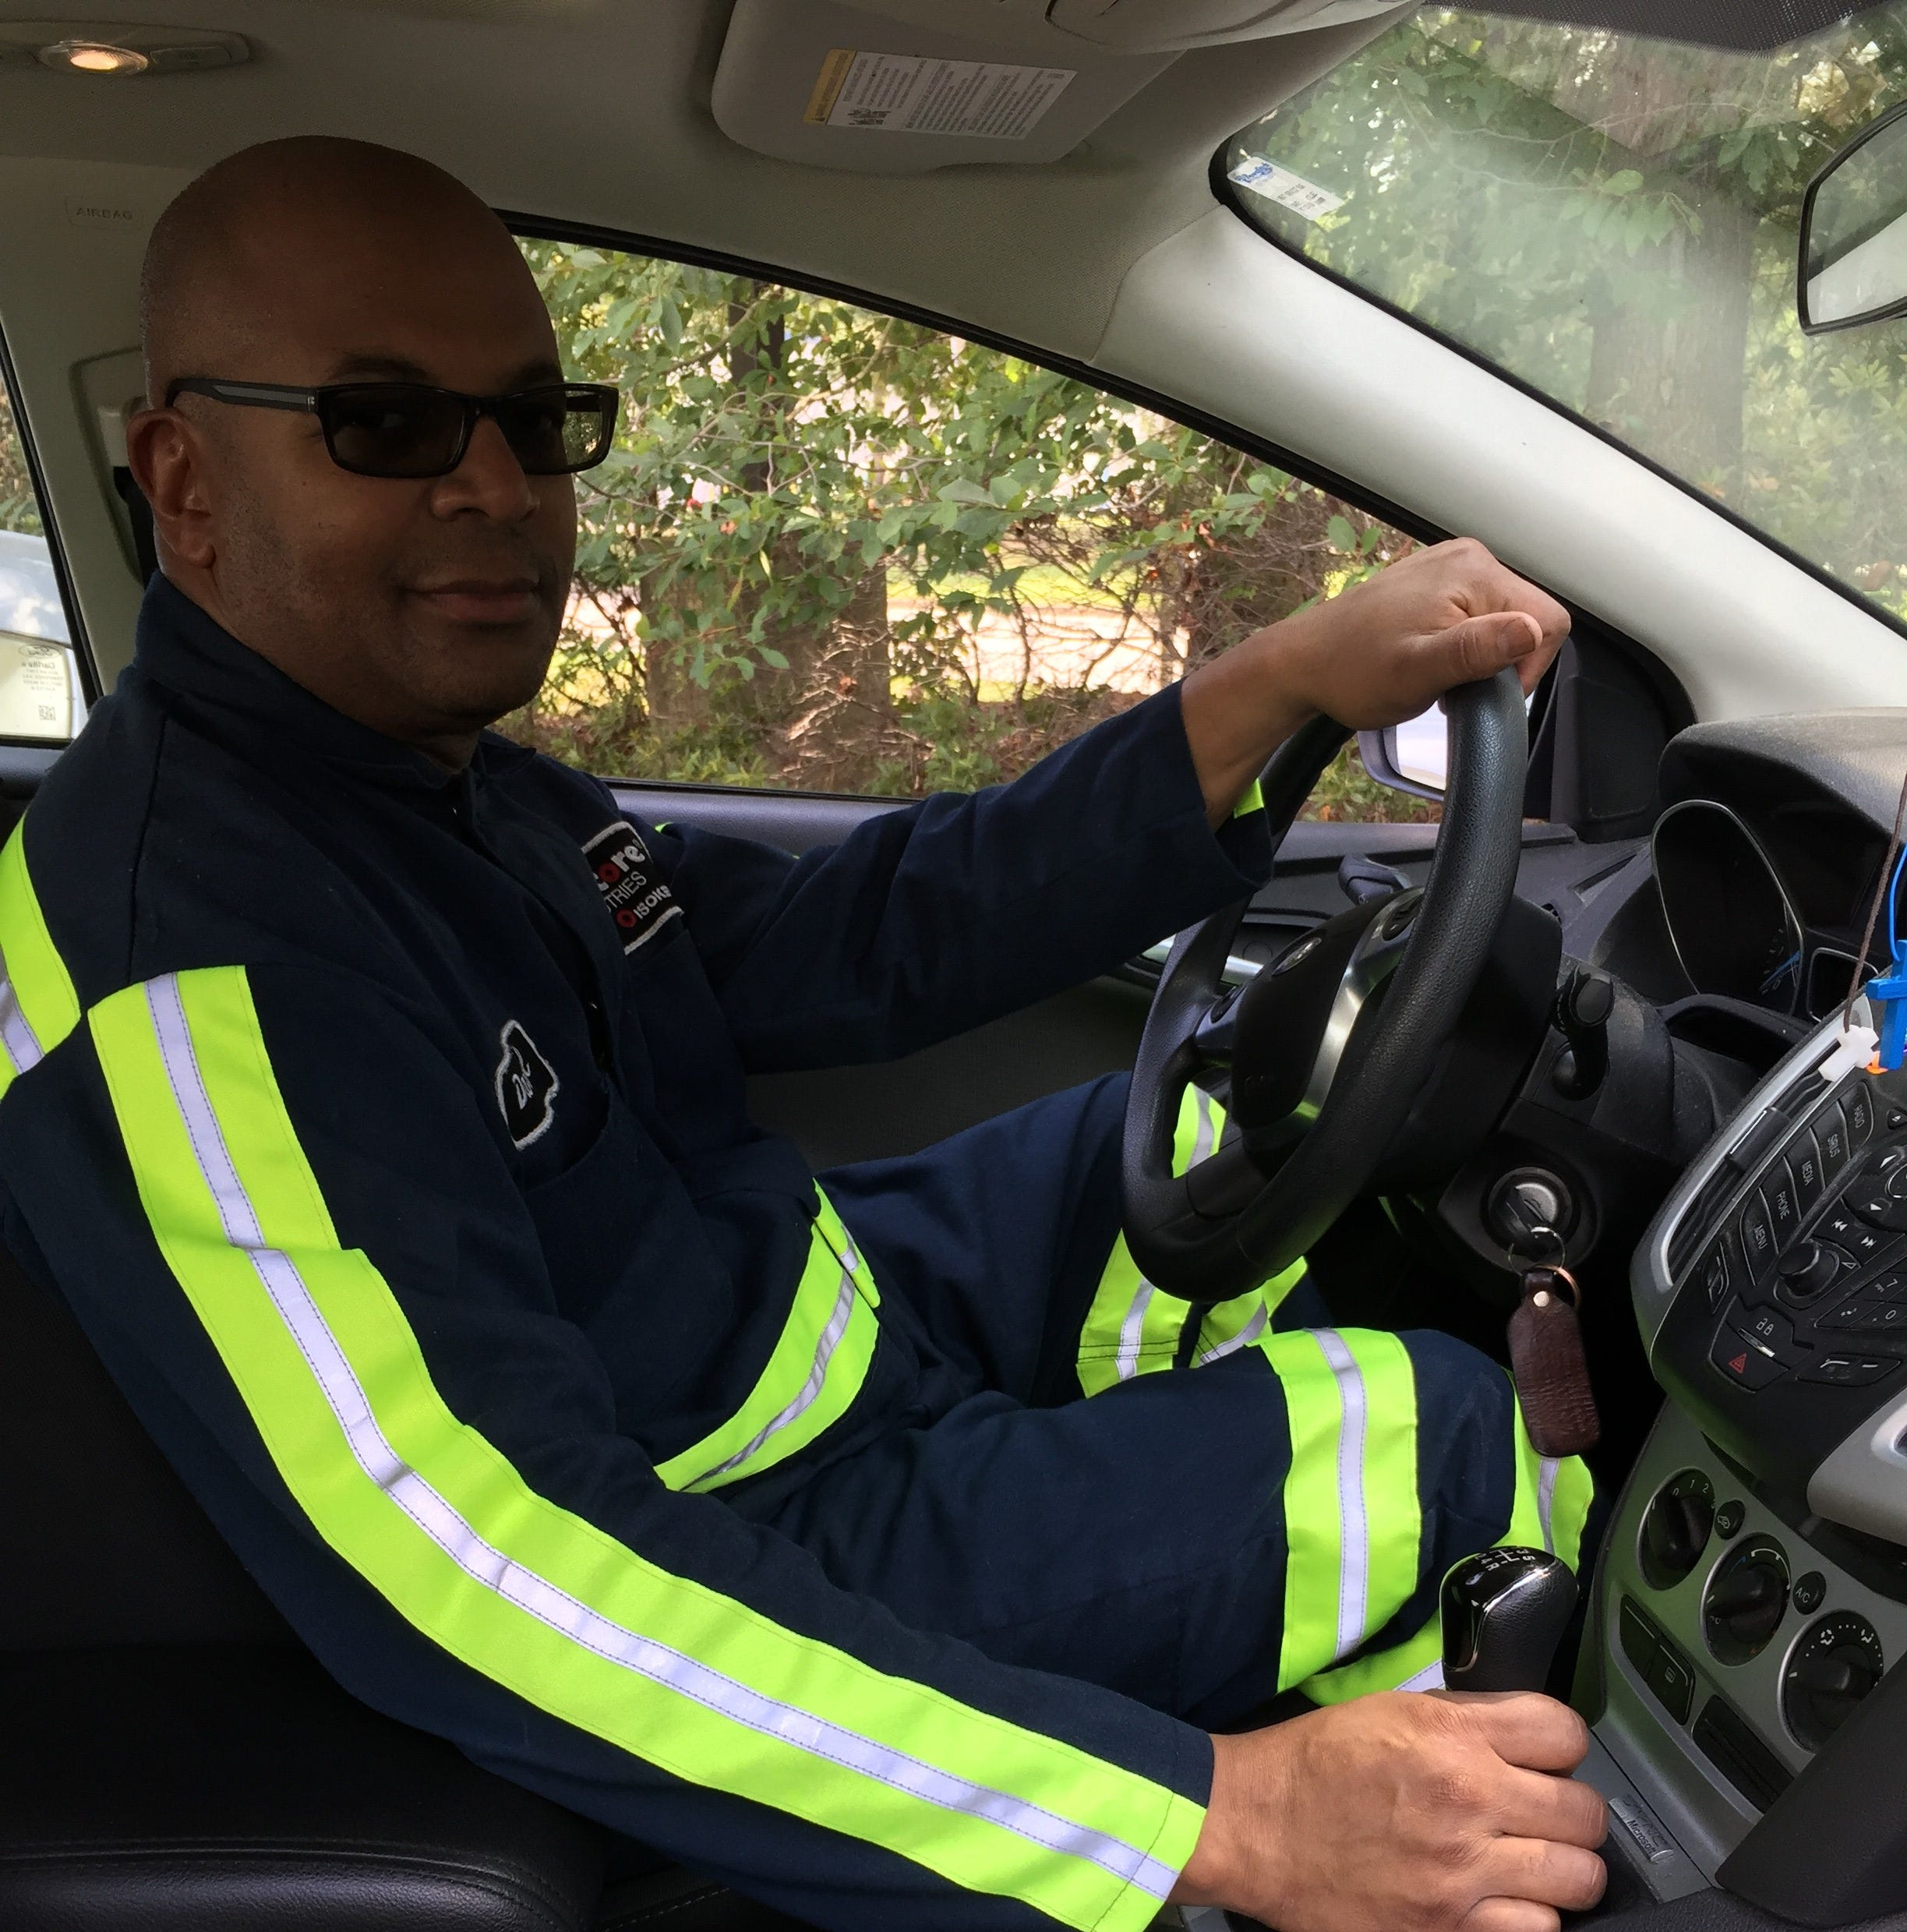 Darryl Hayden of Hampton, Virginia, rides in his manual-transmission 2014 Ford Focus. Hayden remains a fan of stick-shift vehicles, which are falling in popularity.